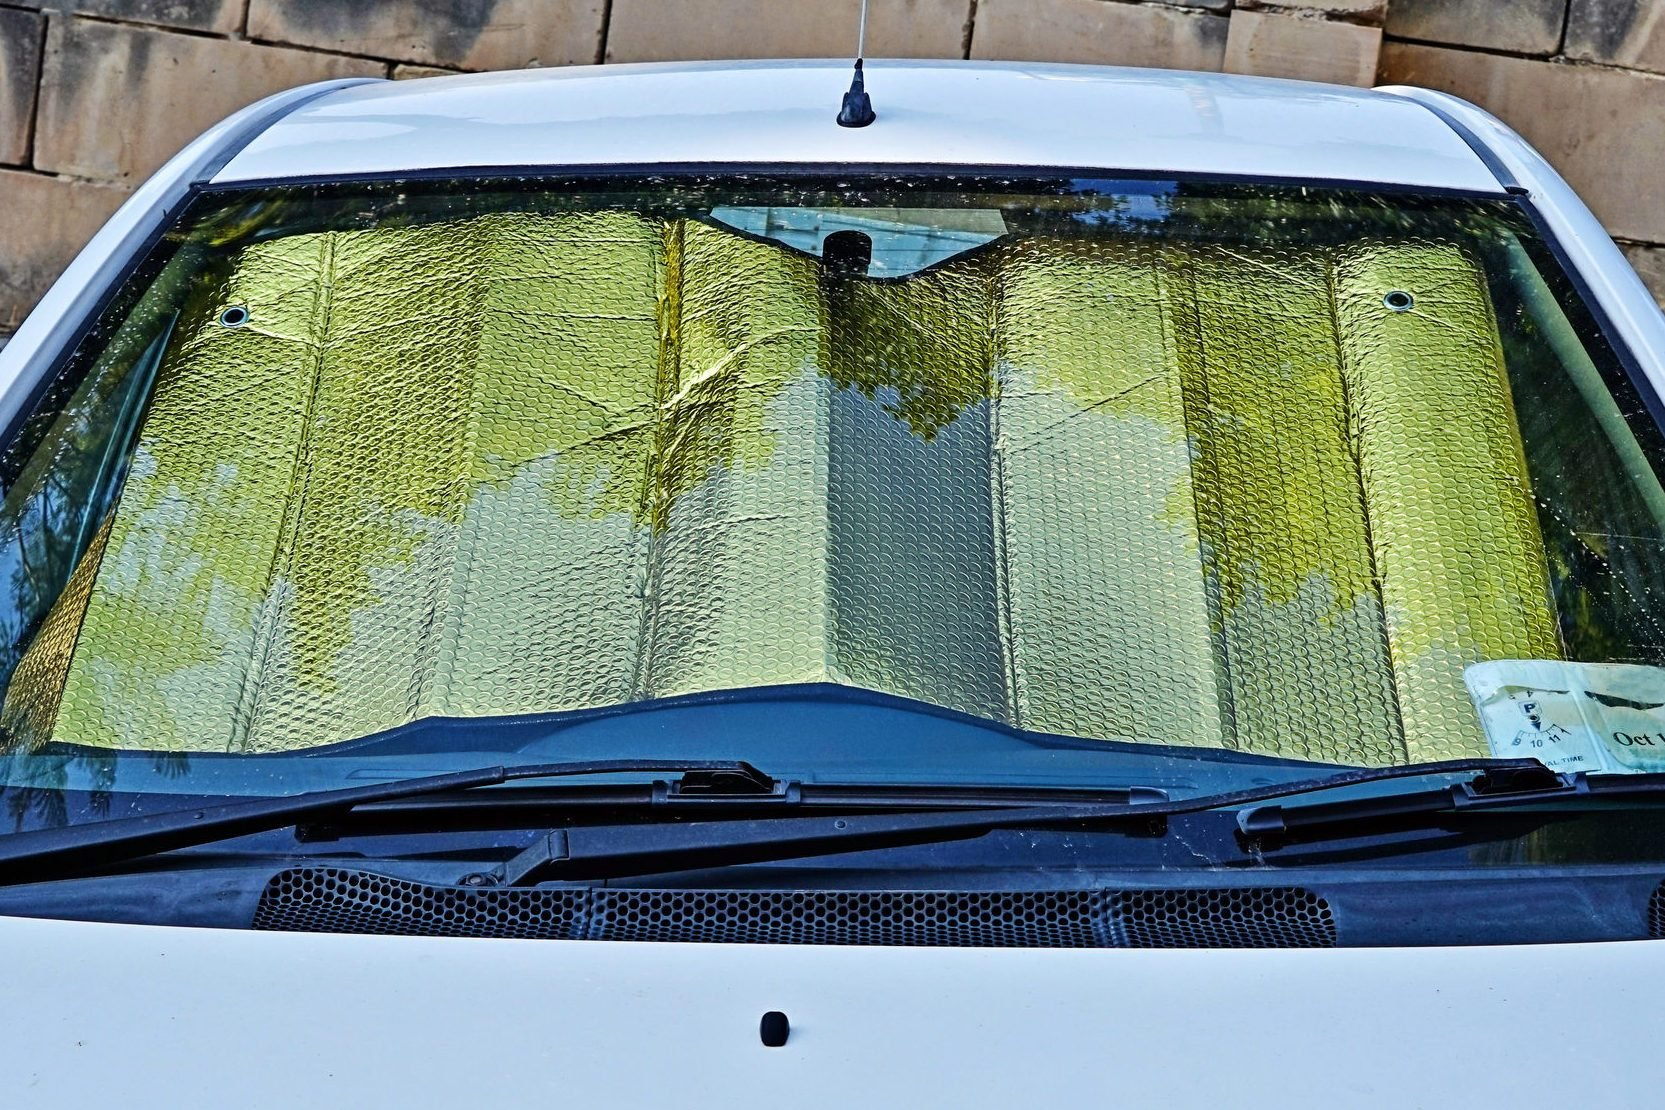 Windshield of car with protective reflective sunscreen surface inside car